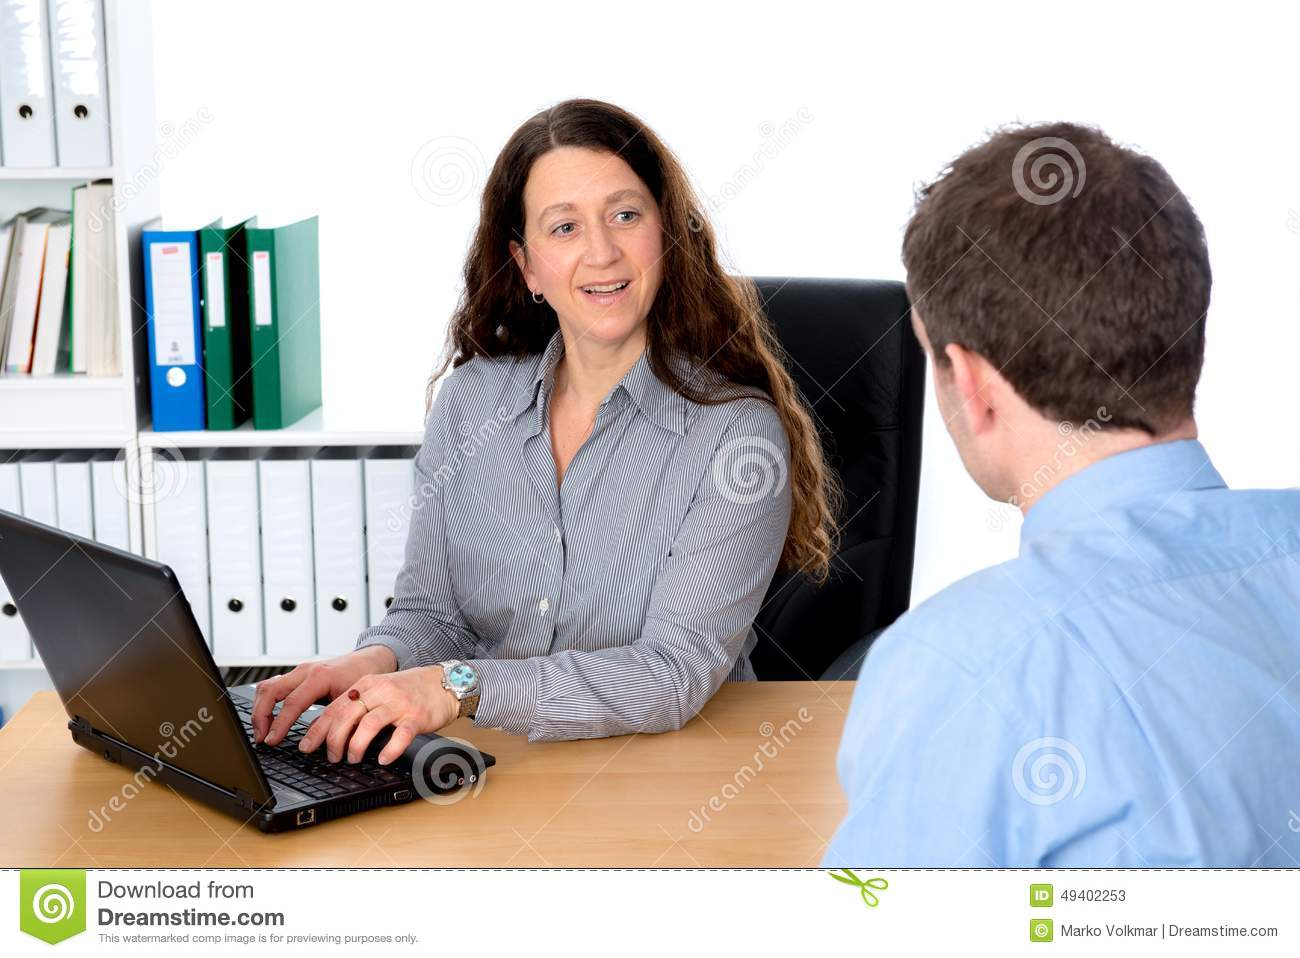 Tips To Prepare For Substance Use Counselor Interview Questions